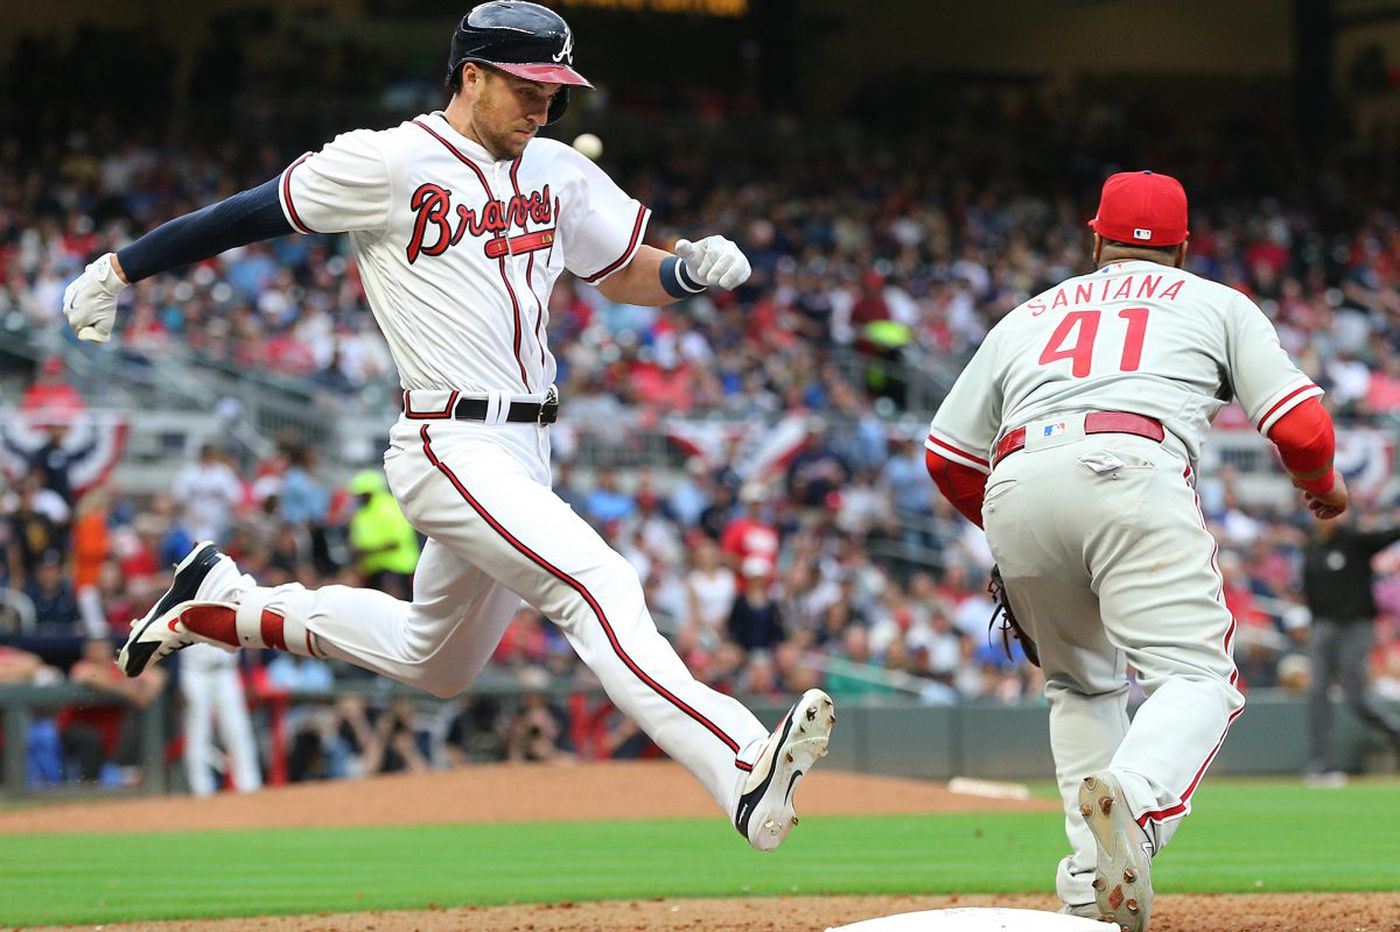 Gabe Kapler's early pull of Aaron Nola costs Phillies as bullpen yields walk-off HR to Braves